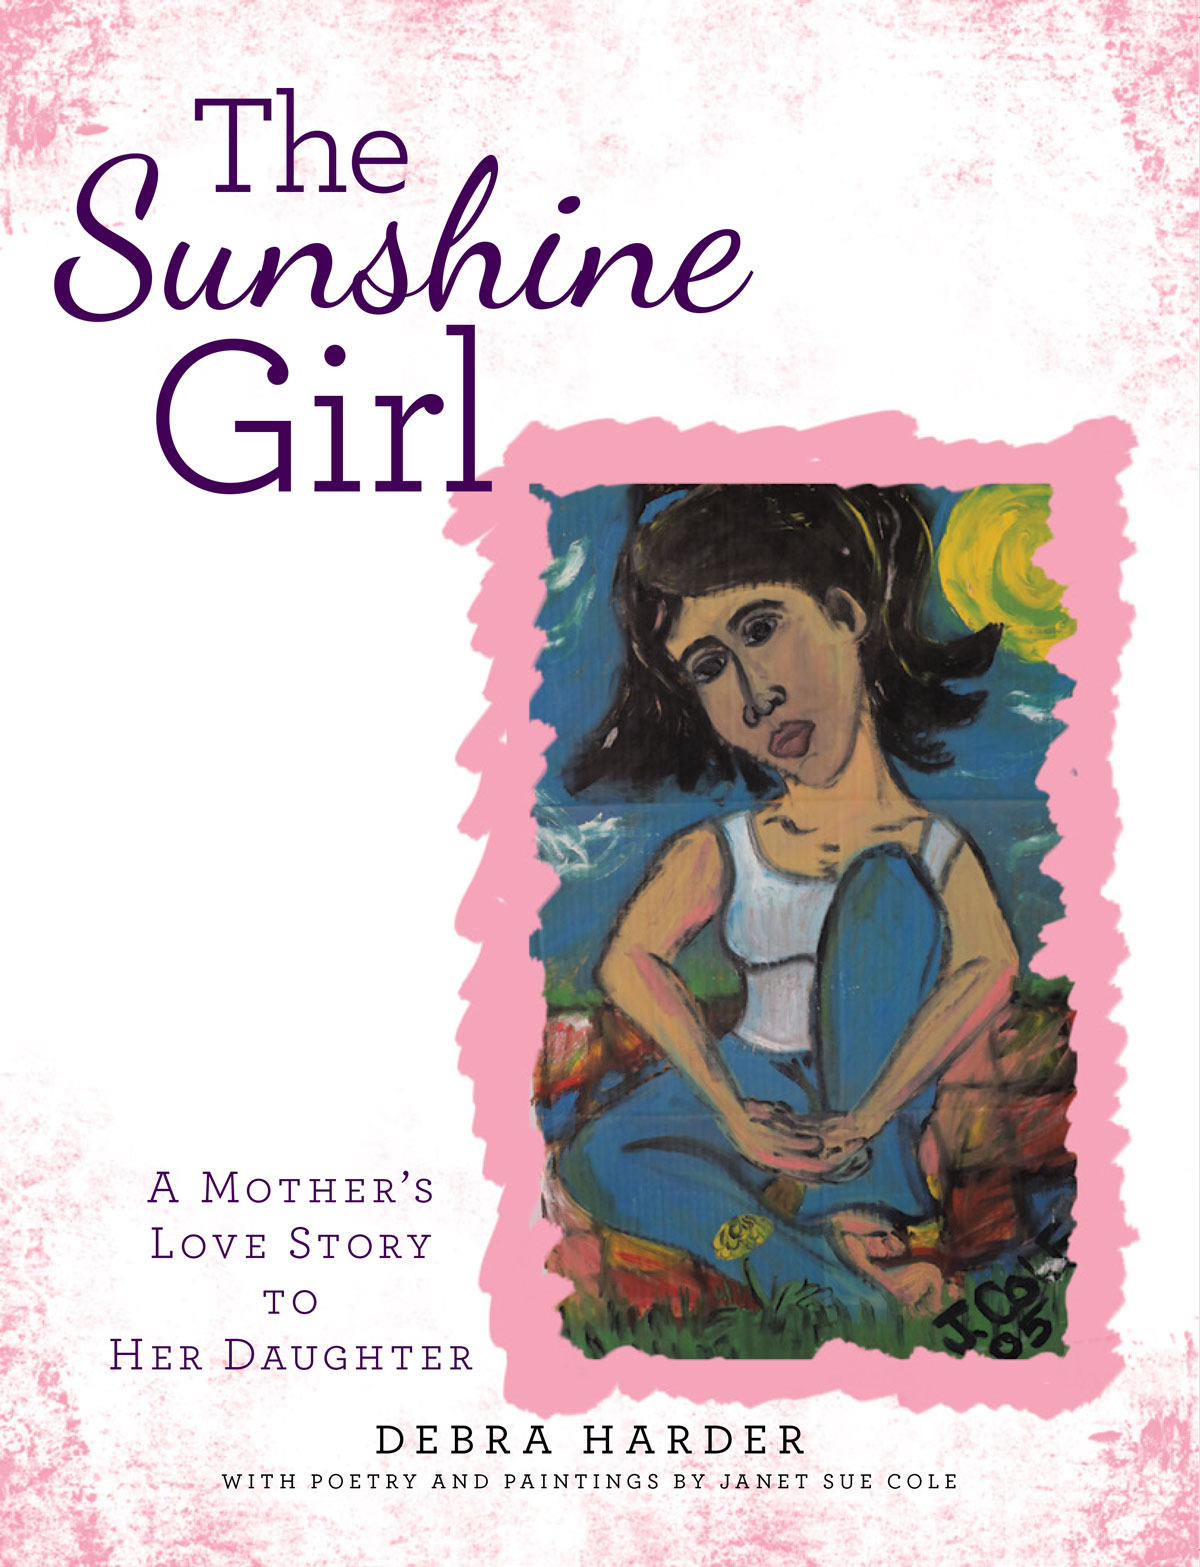 The Sunshine Girl: A Mother's Love Story To Her Daughter